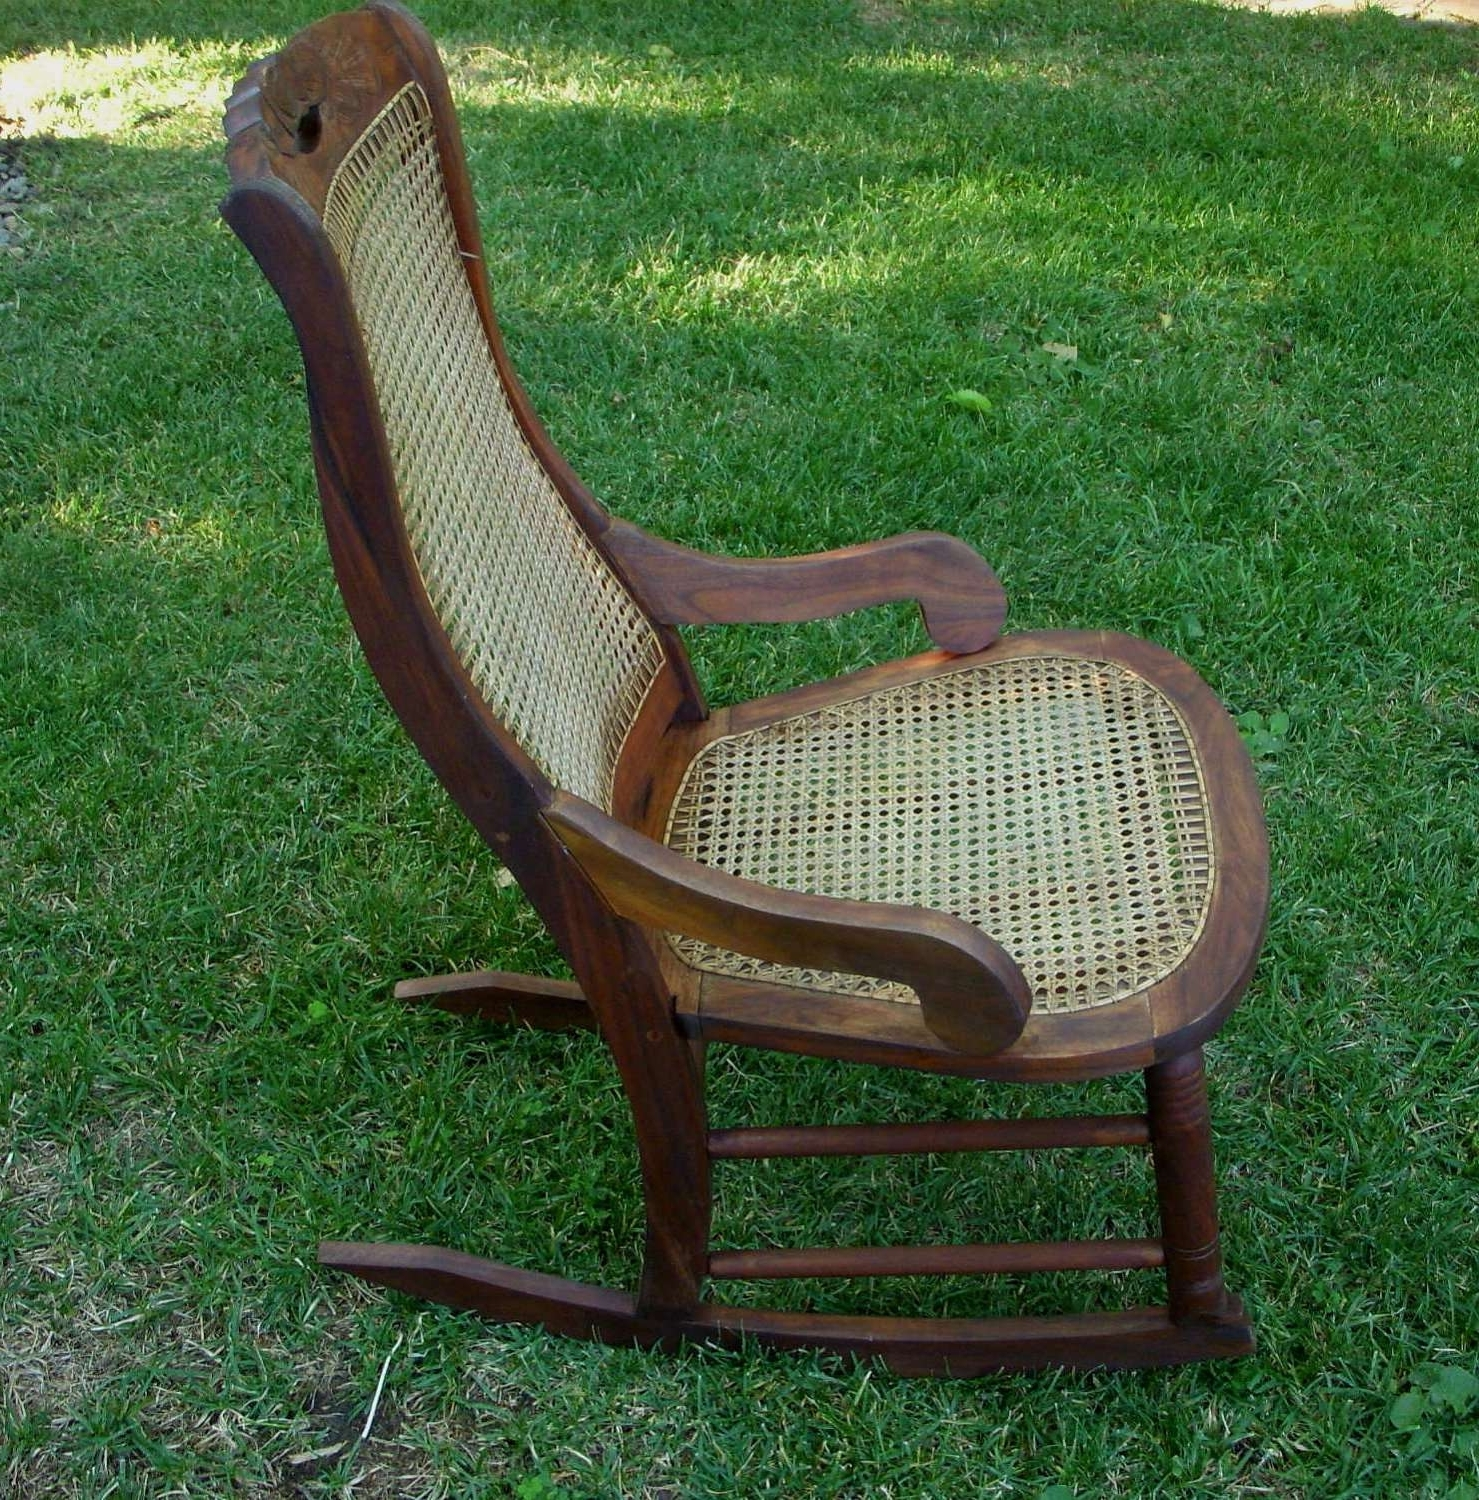 Chair Designs Gallery Pertaining To Current Antique Wicker Rocking Chairs (View 5 of 15)